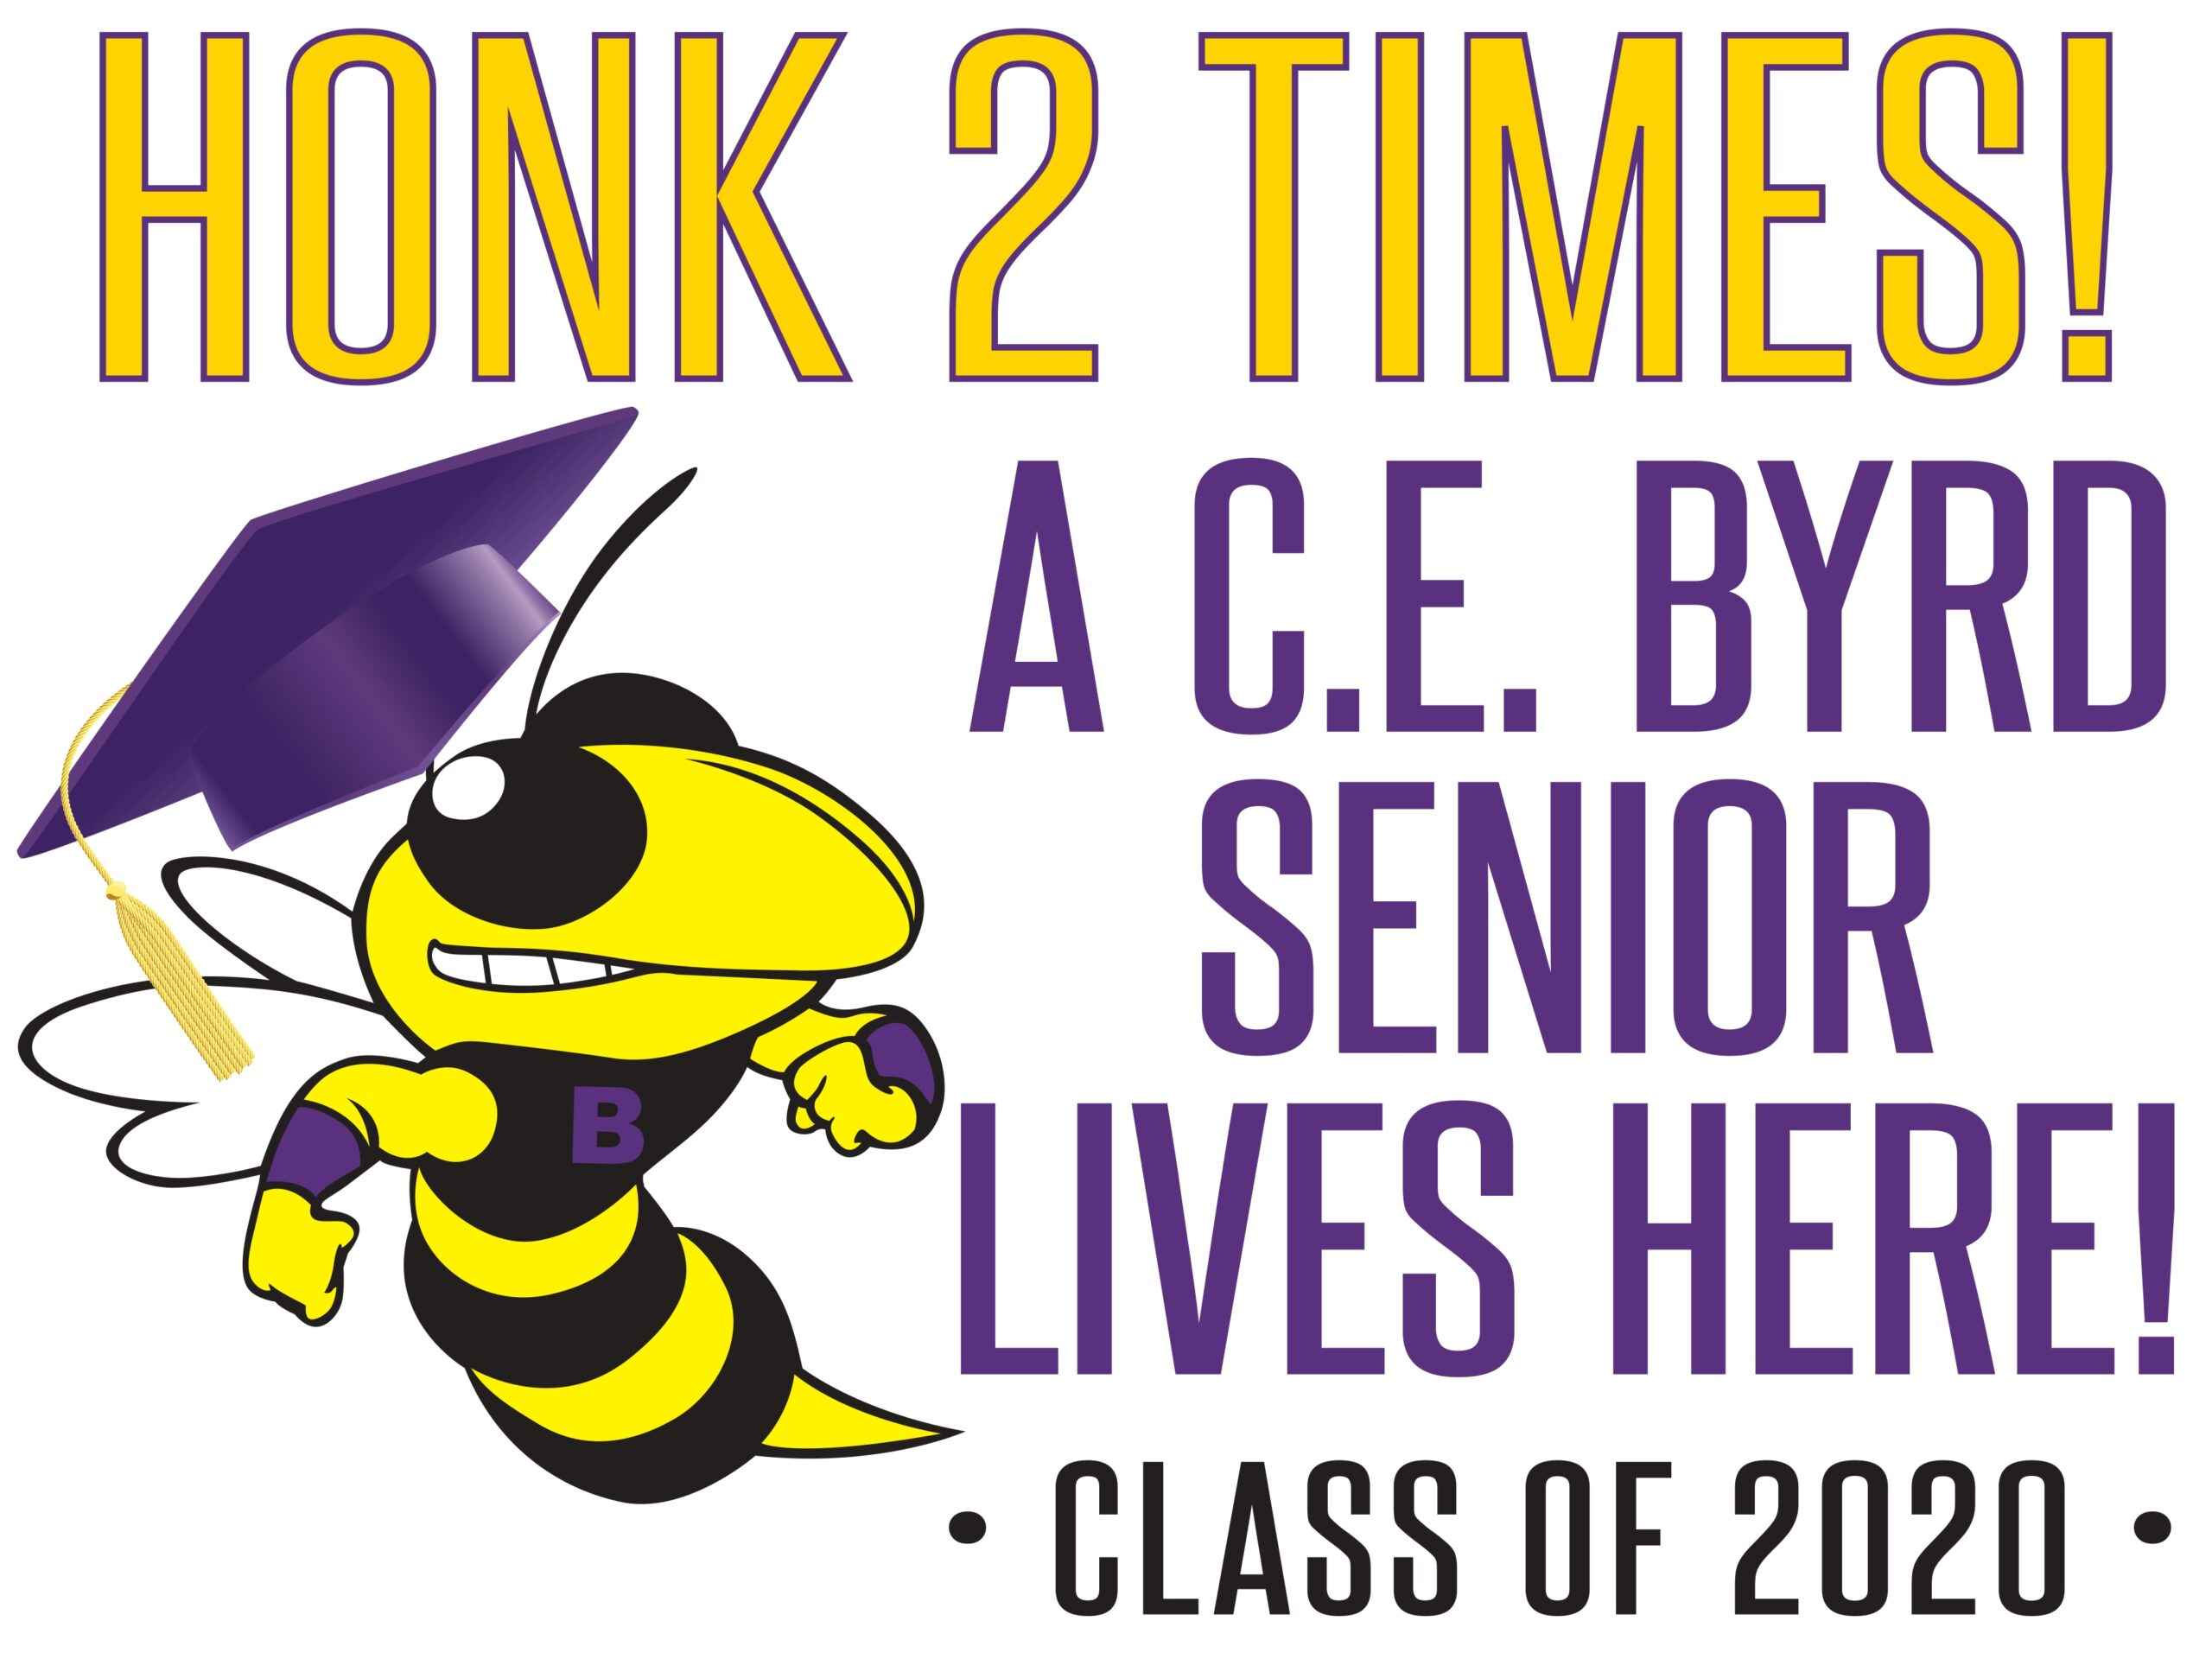 C.E. Byrd Senior Yard Signs